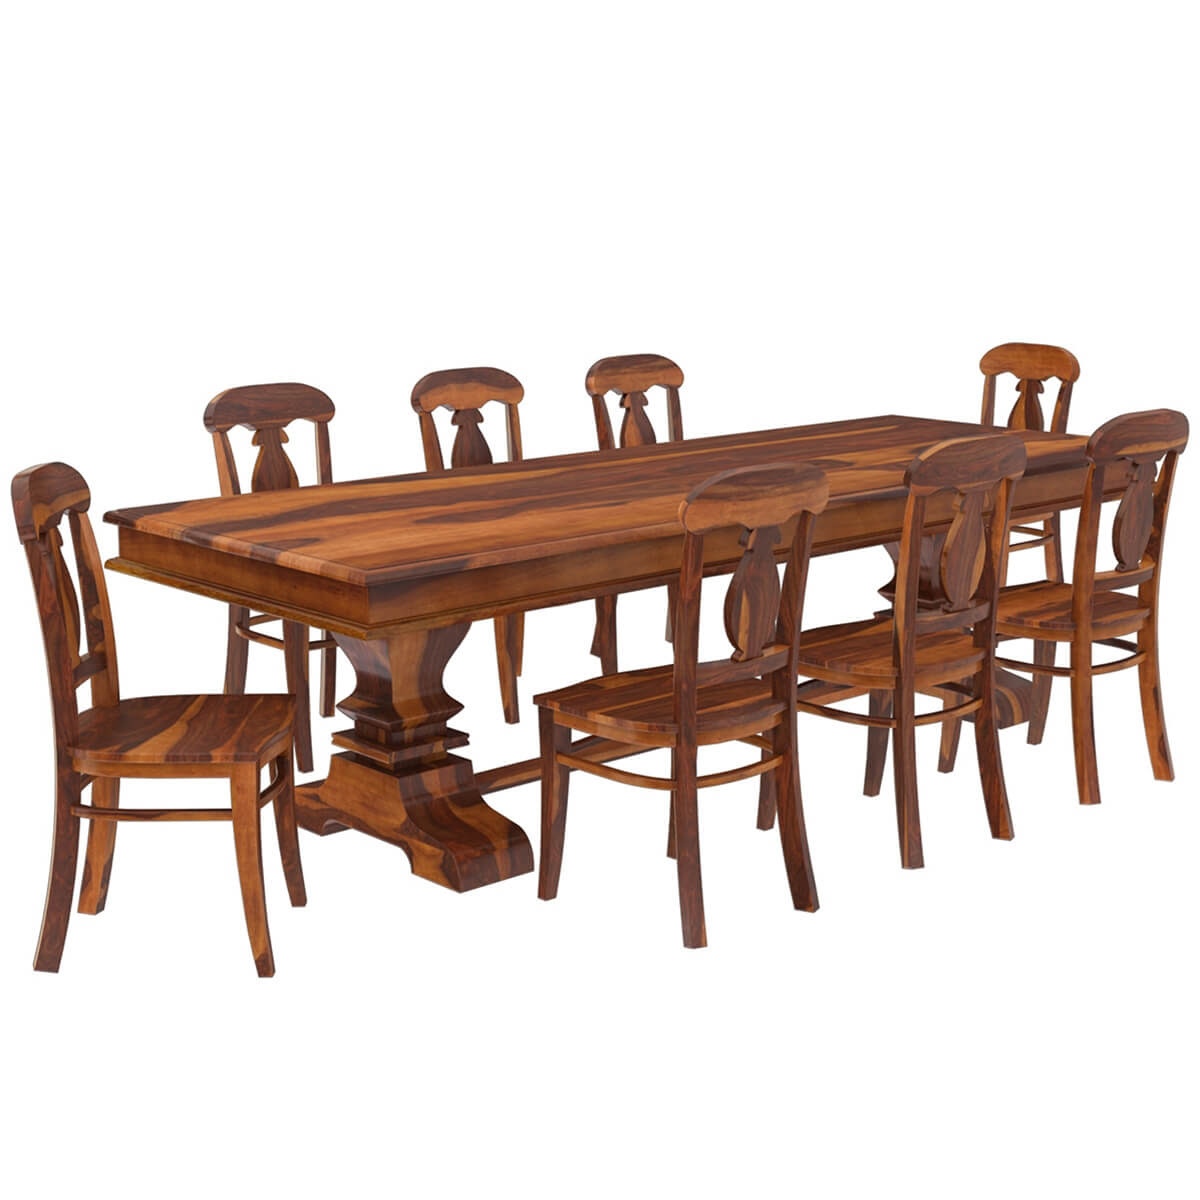 Nottingham Solid Wood 92\u201d Trestle Dining Table Benches \u0026 2 Chairs